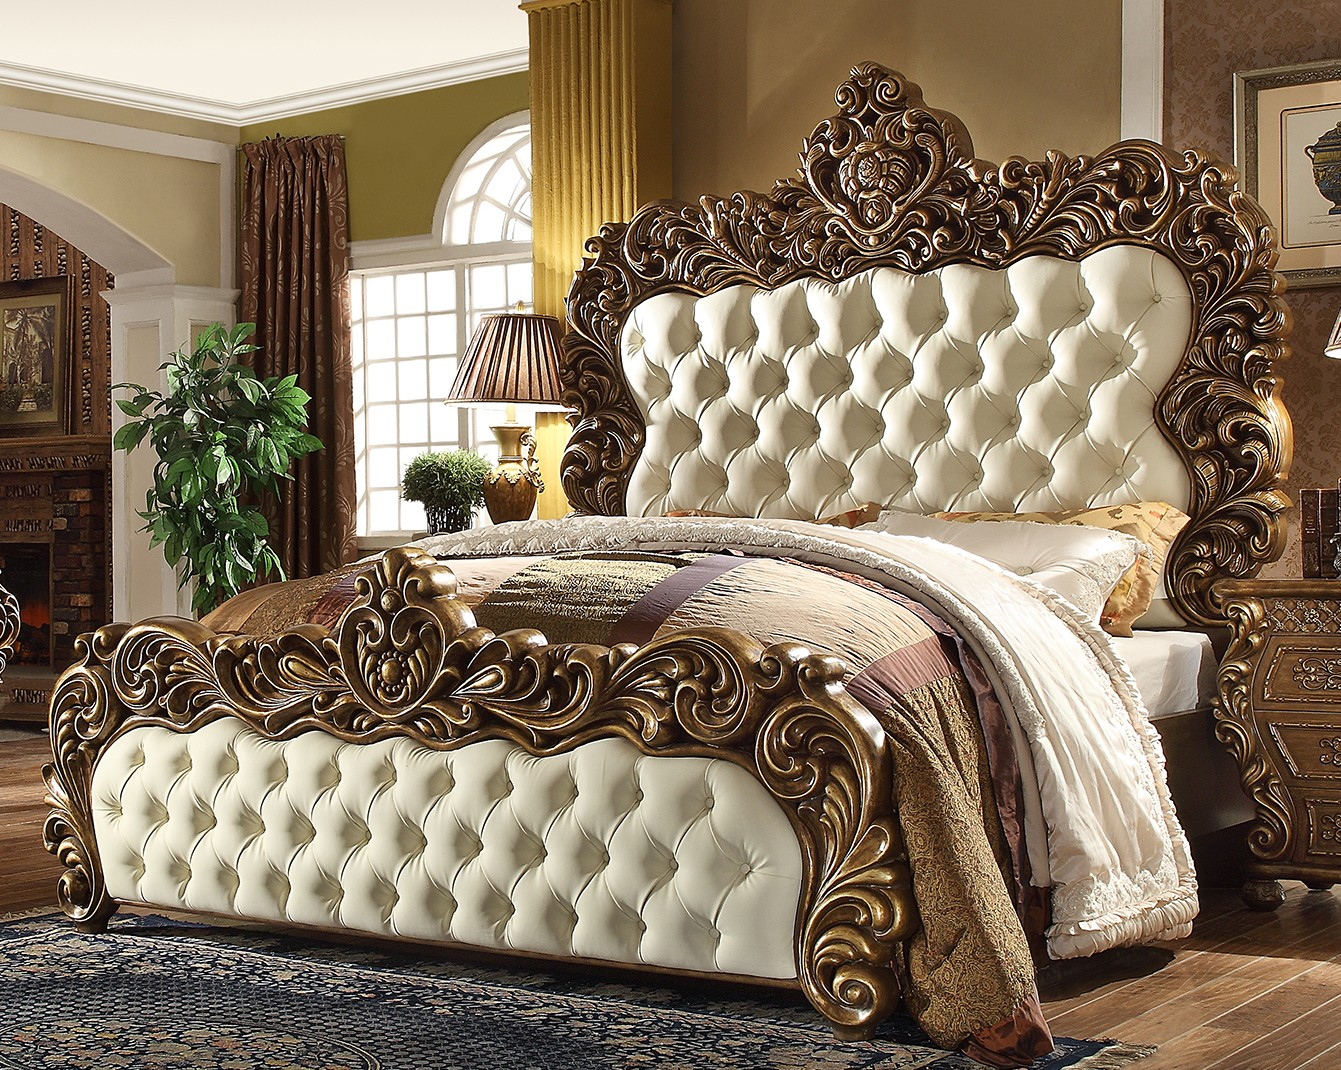 master bedroom furniture ideas photo - 5